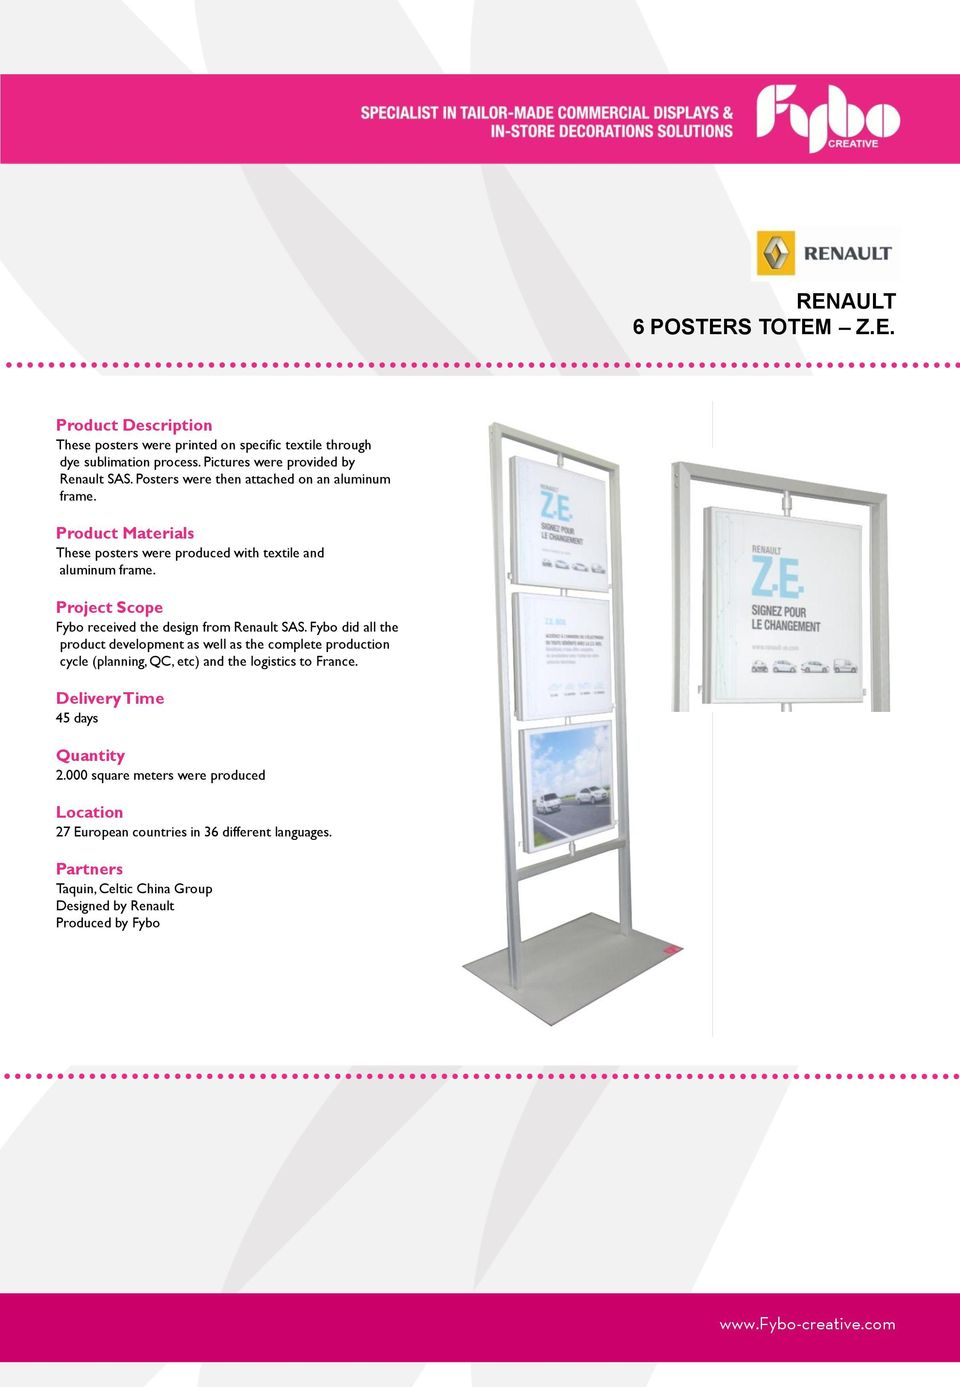 These posters were produced with textile and aluminum frame. Fybo received the design from Renault SAS.